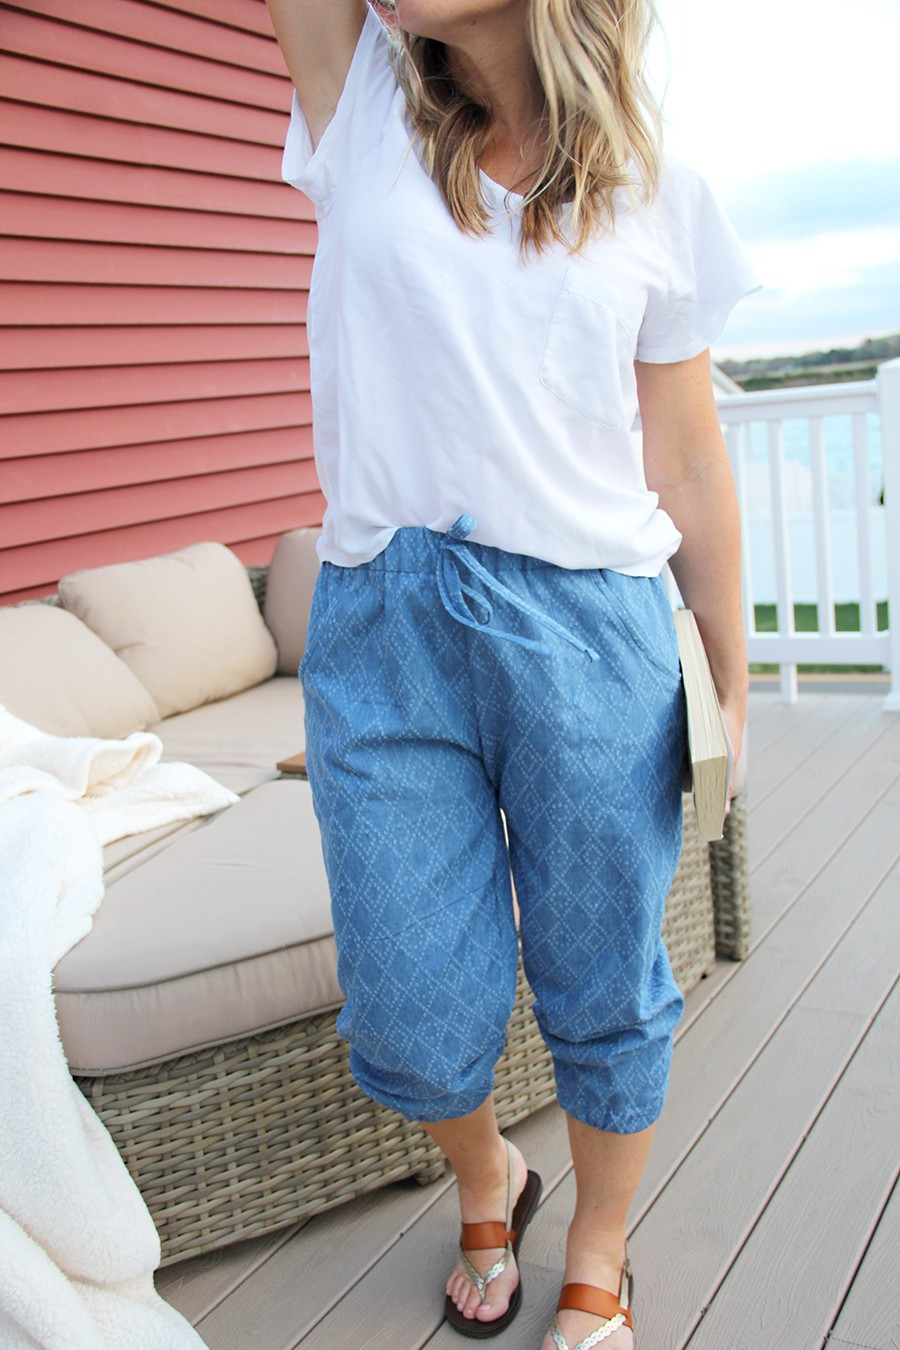 sew yourself a pair of jogger pants this Spring!